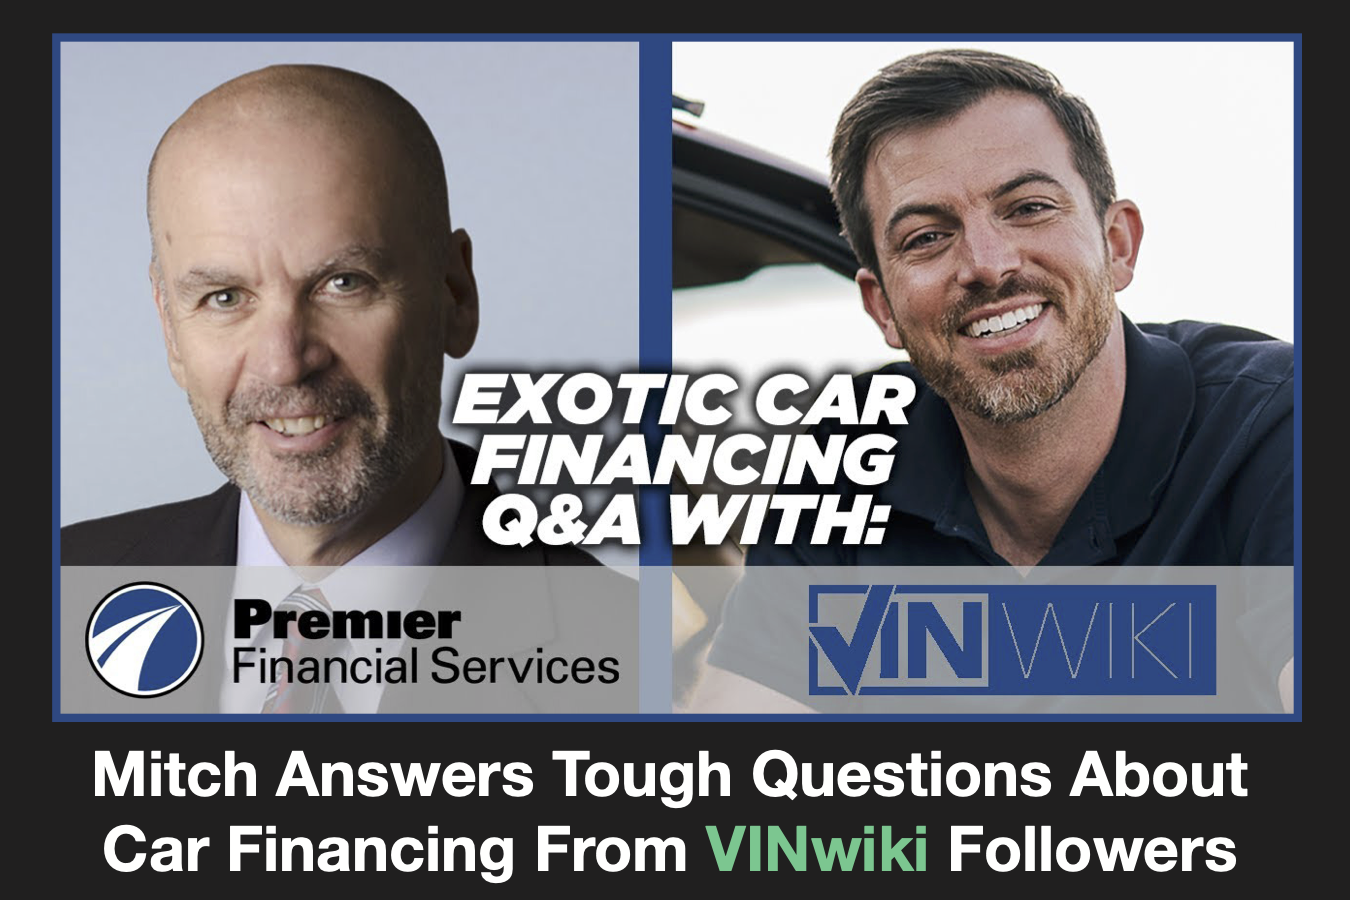 Vinwiki YouTube Q&A on Exotic Car Financing, Ed Bolian, Premier, #pfs_Leasing